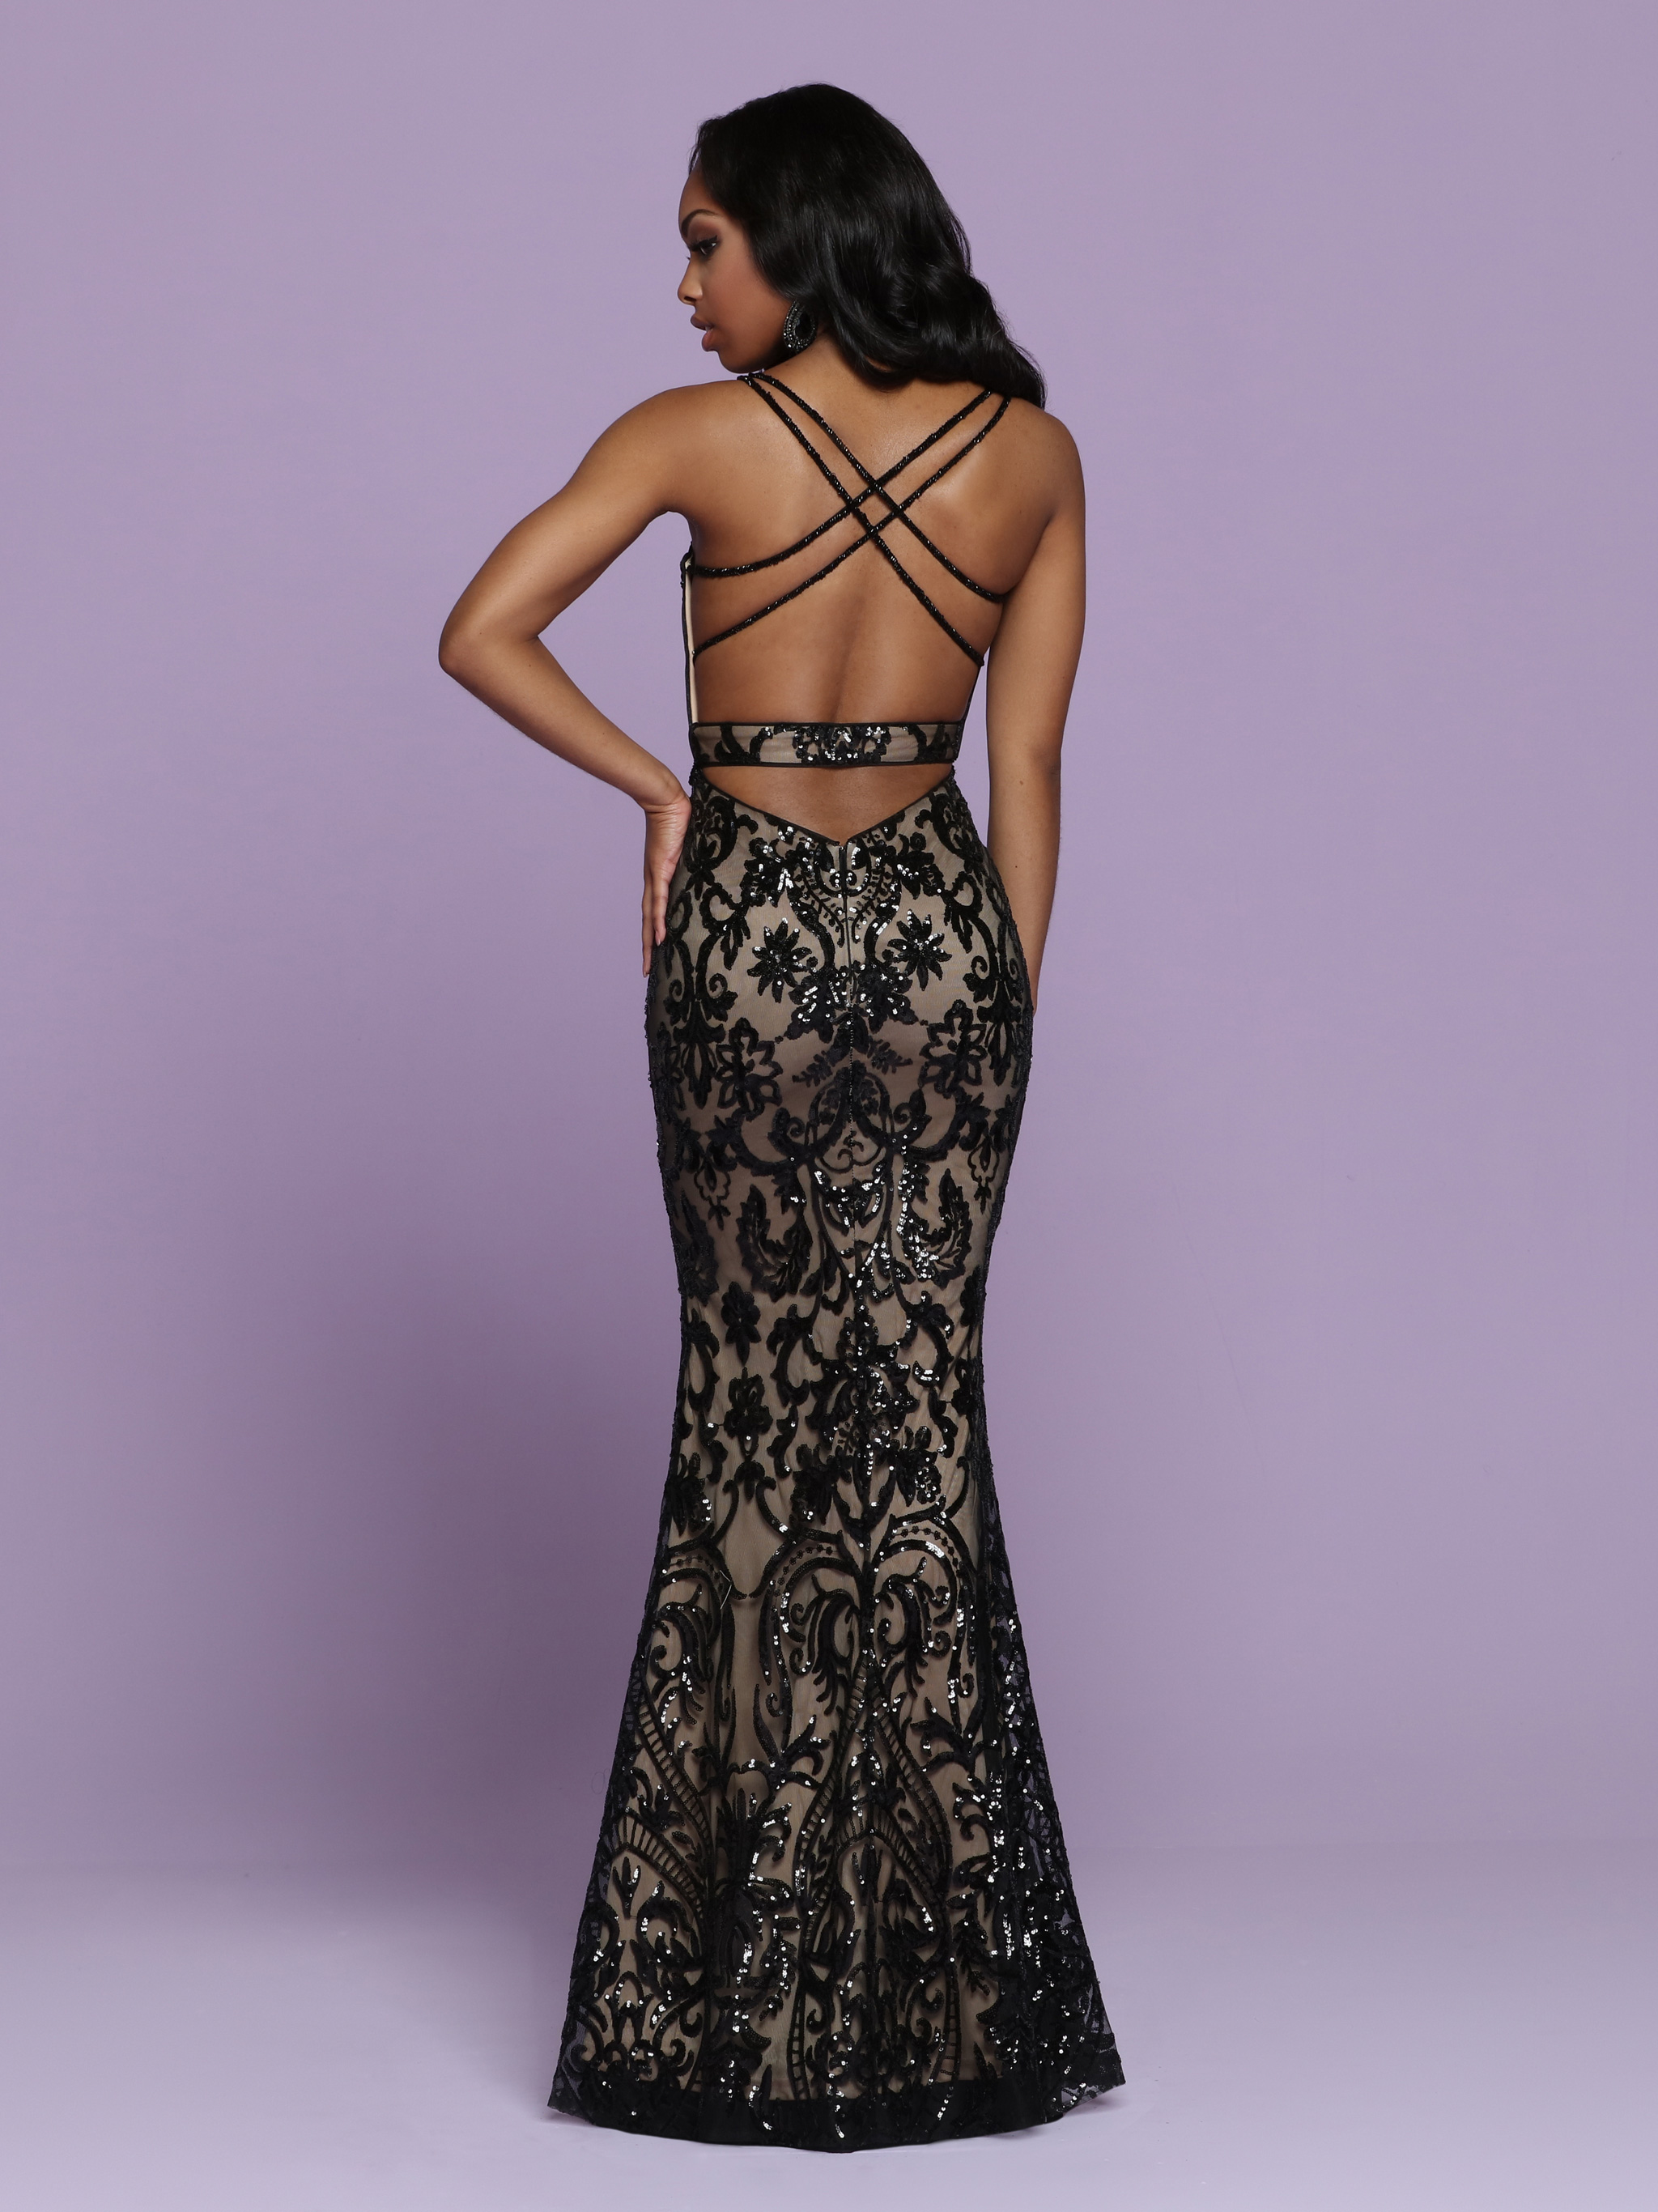 Image showing back view of style #72085